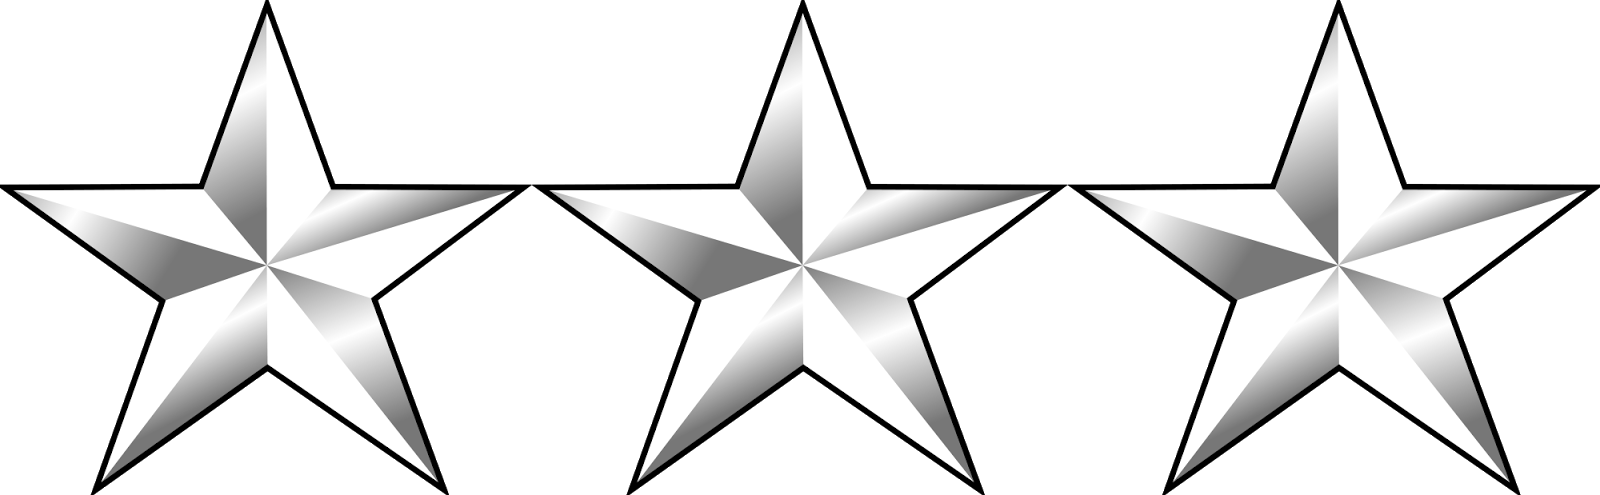 three-star-clipart-4.png